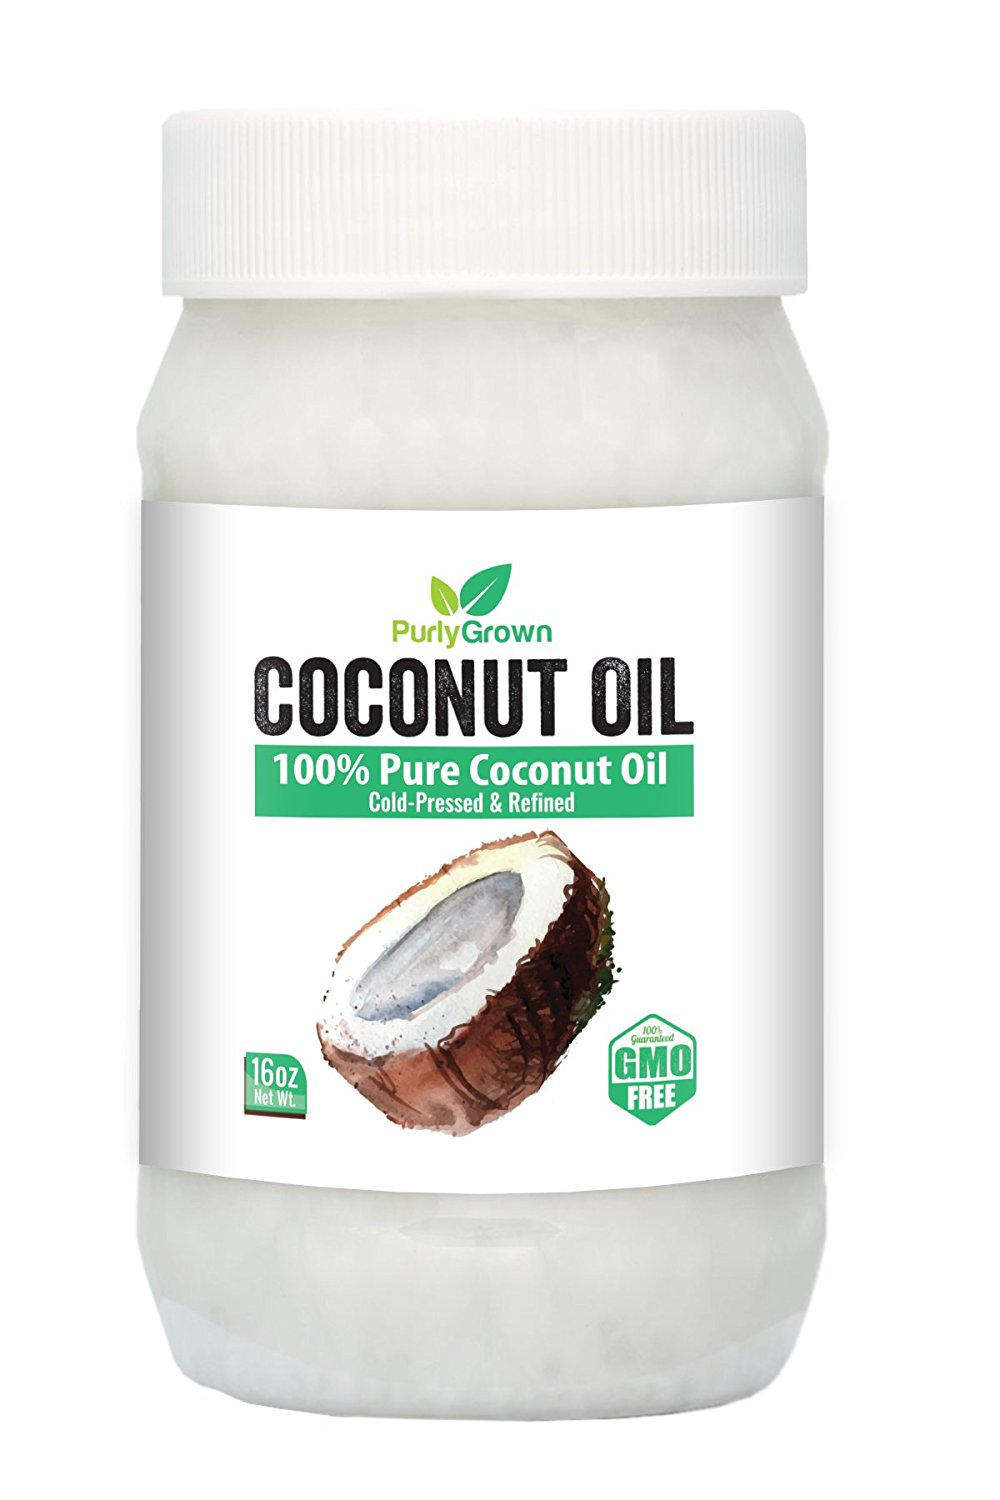 Purly Grown Cold Pressed Virgin Coconut Oil